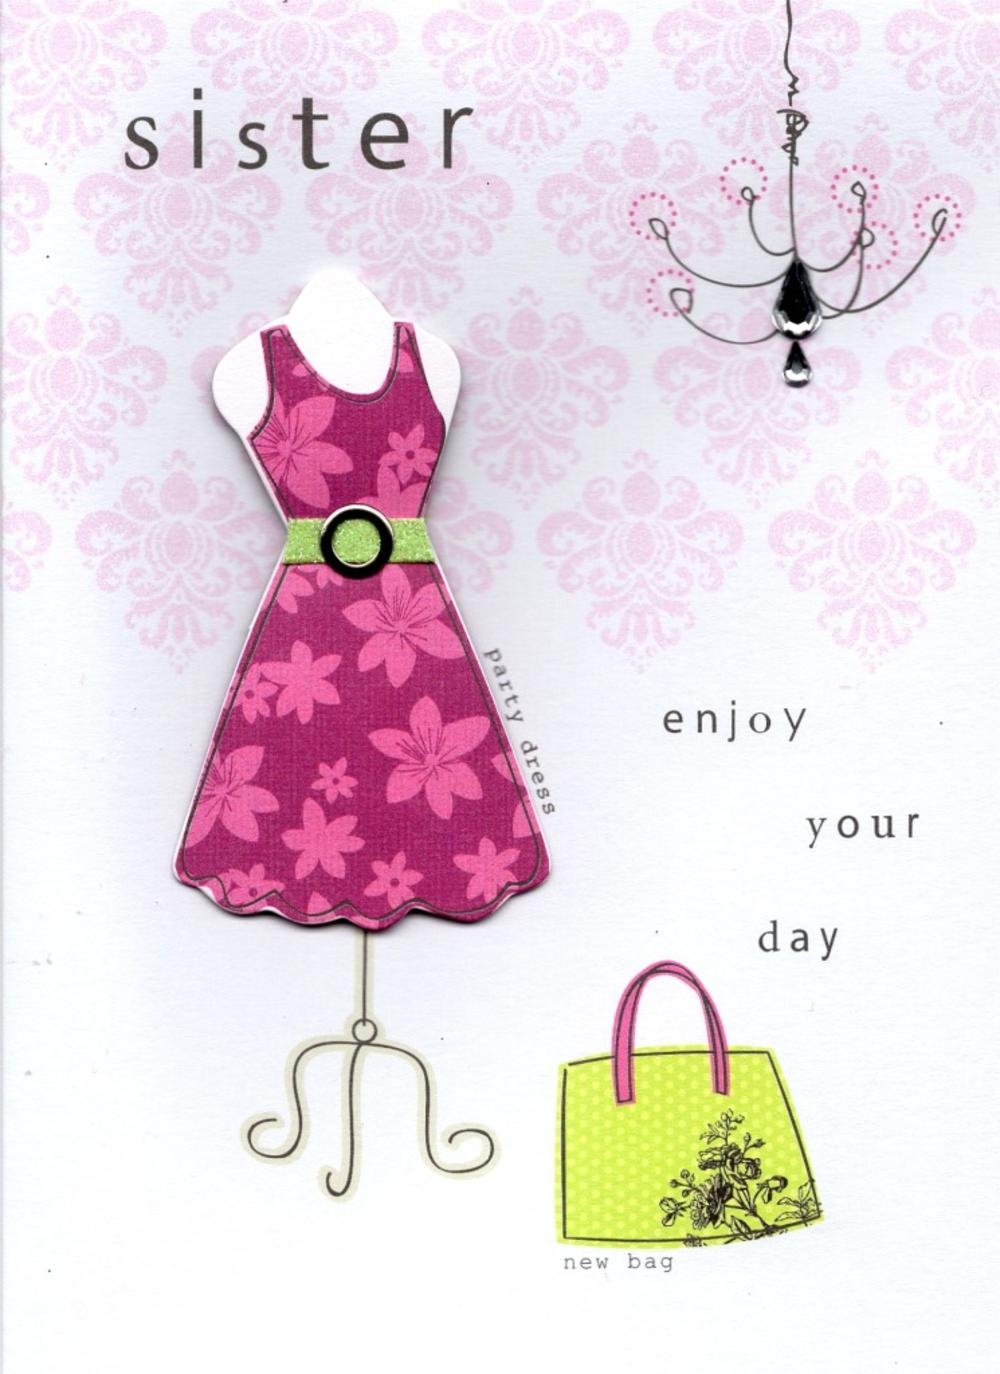 sister pretty dress handmade happy birthday card  cards  love kates, Birthday card